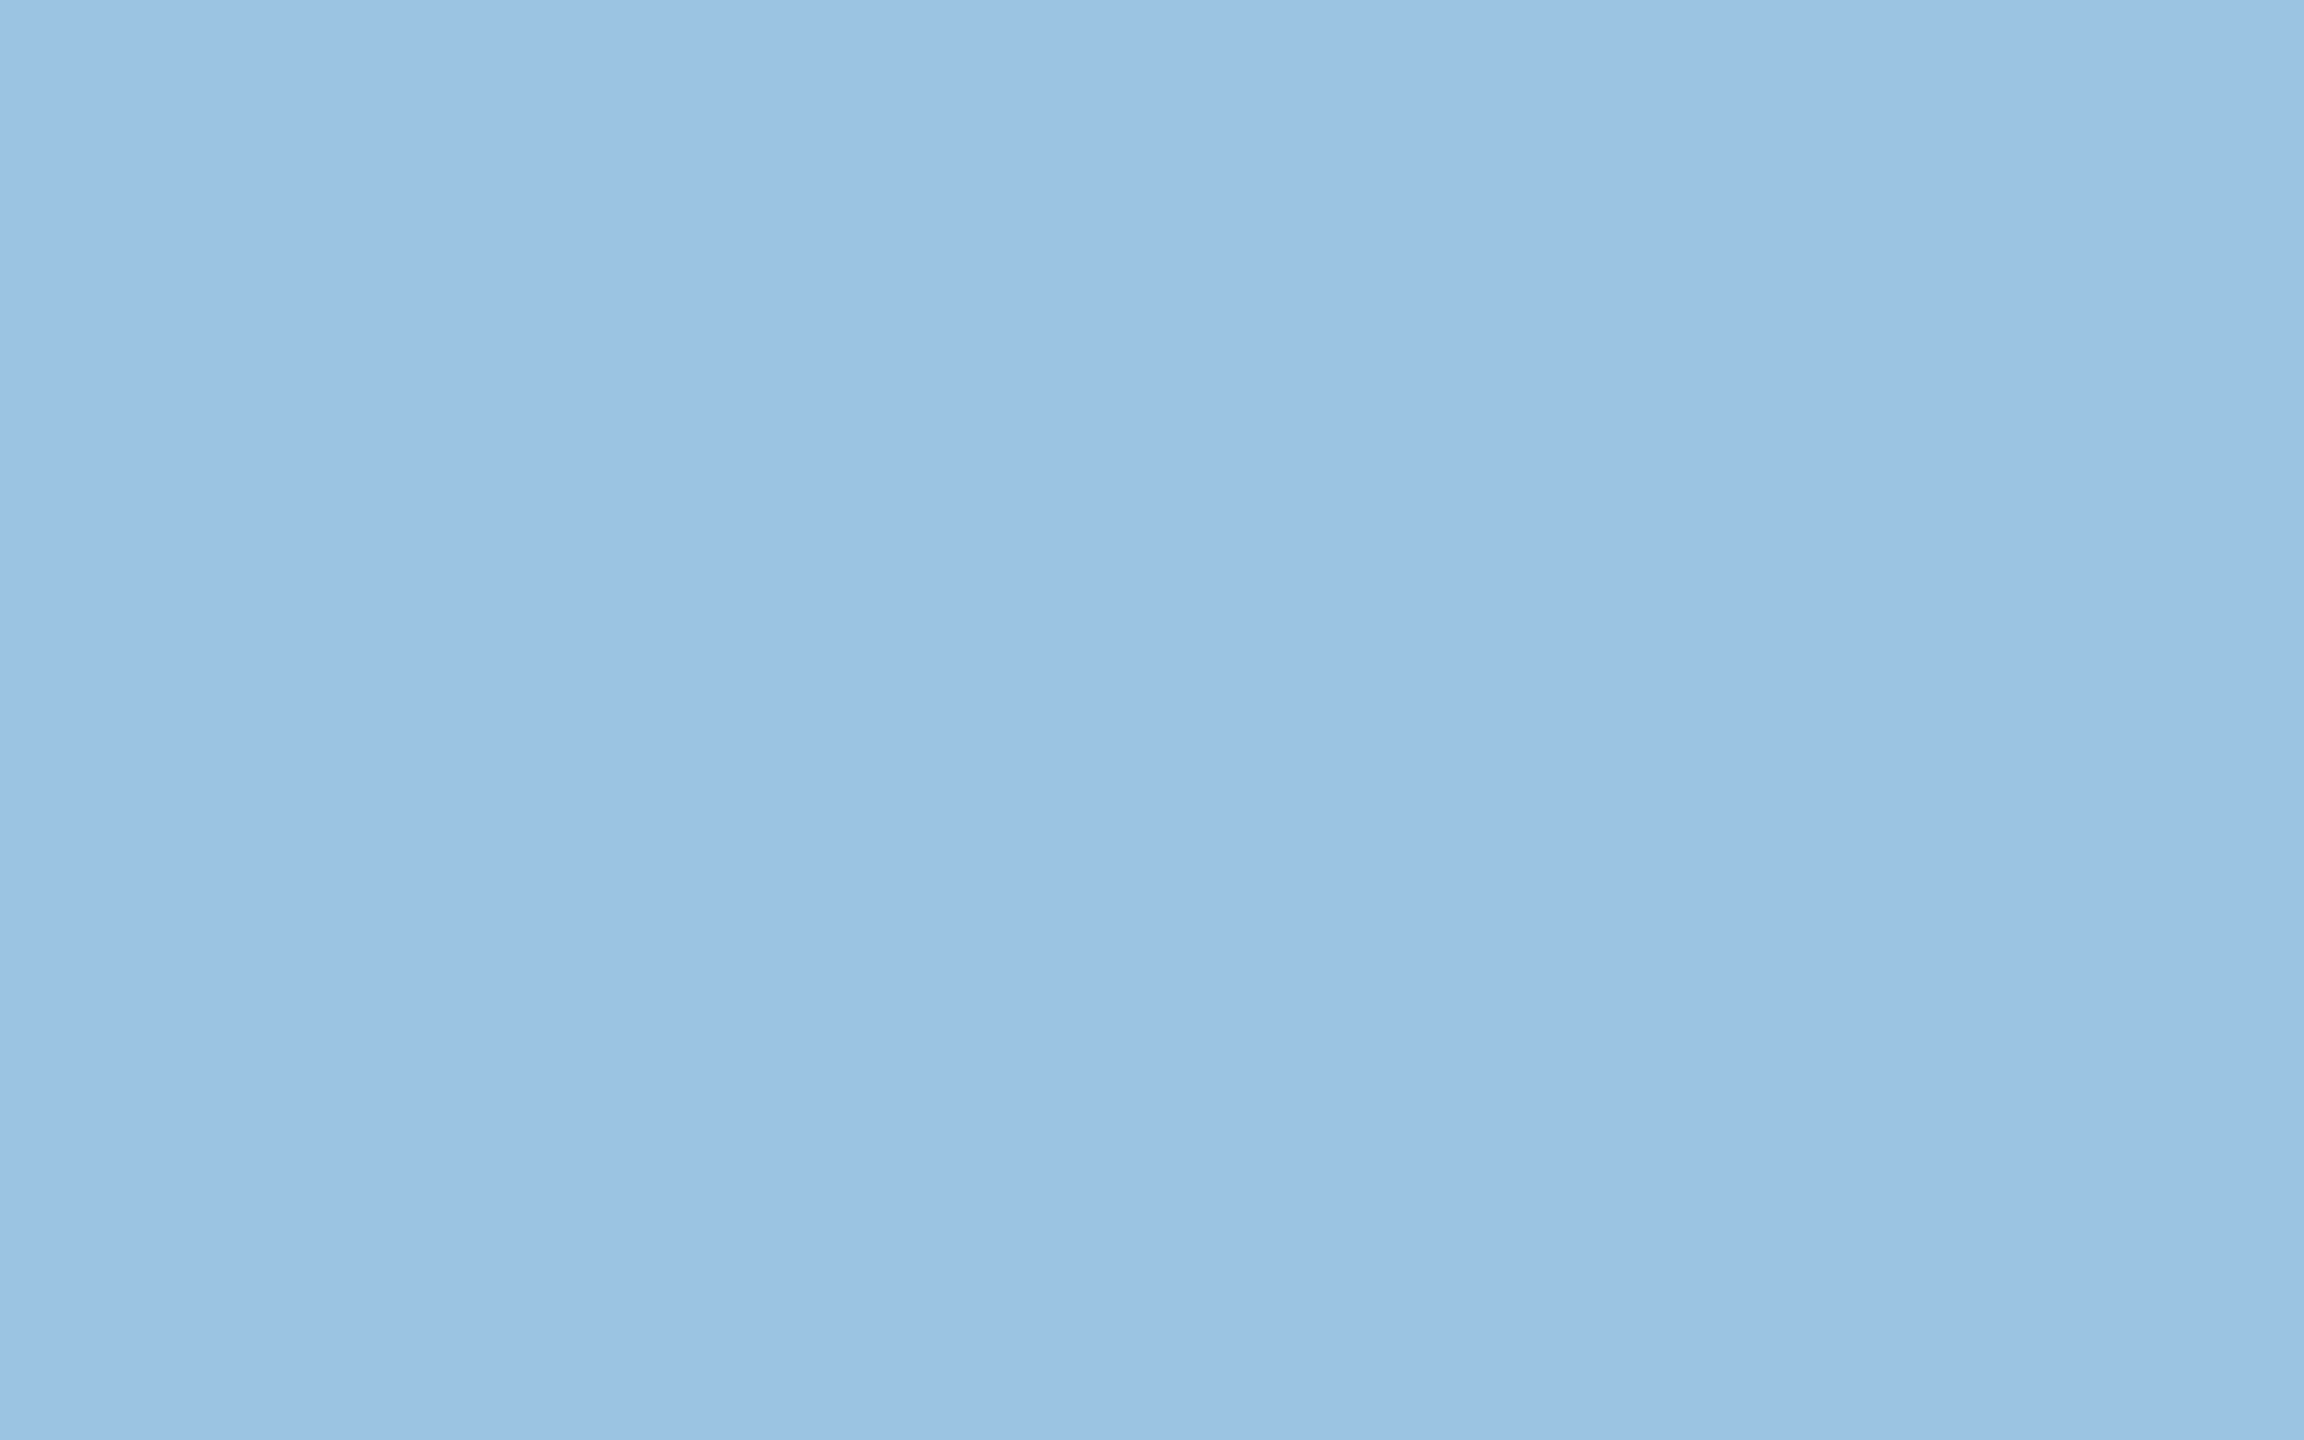 2304x1440 Pale Cerulean Solid Color Background